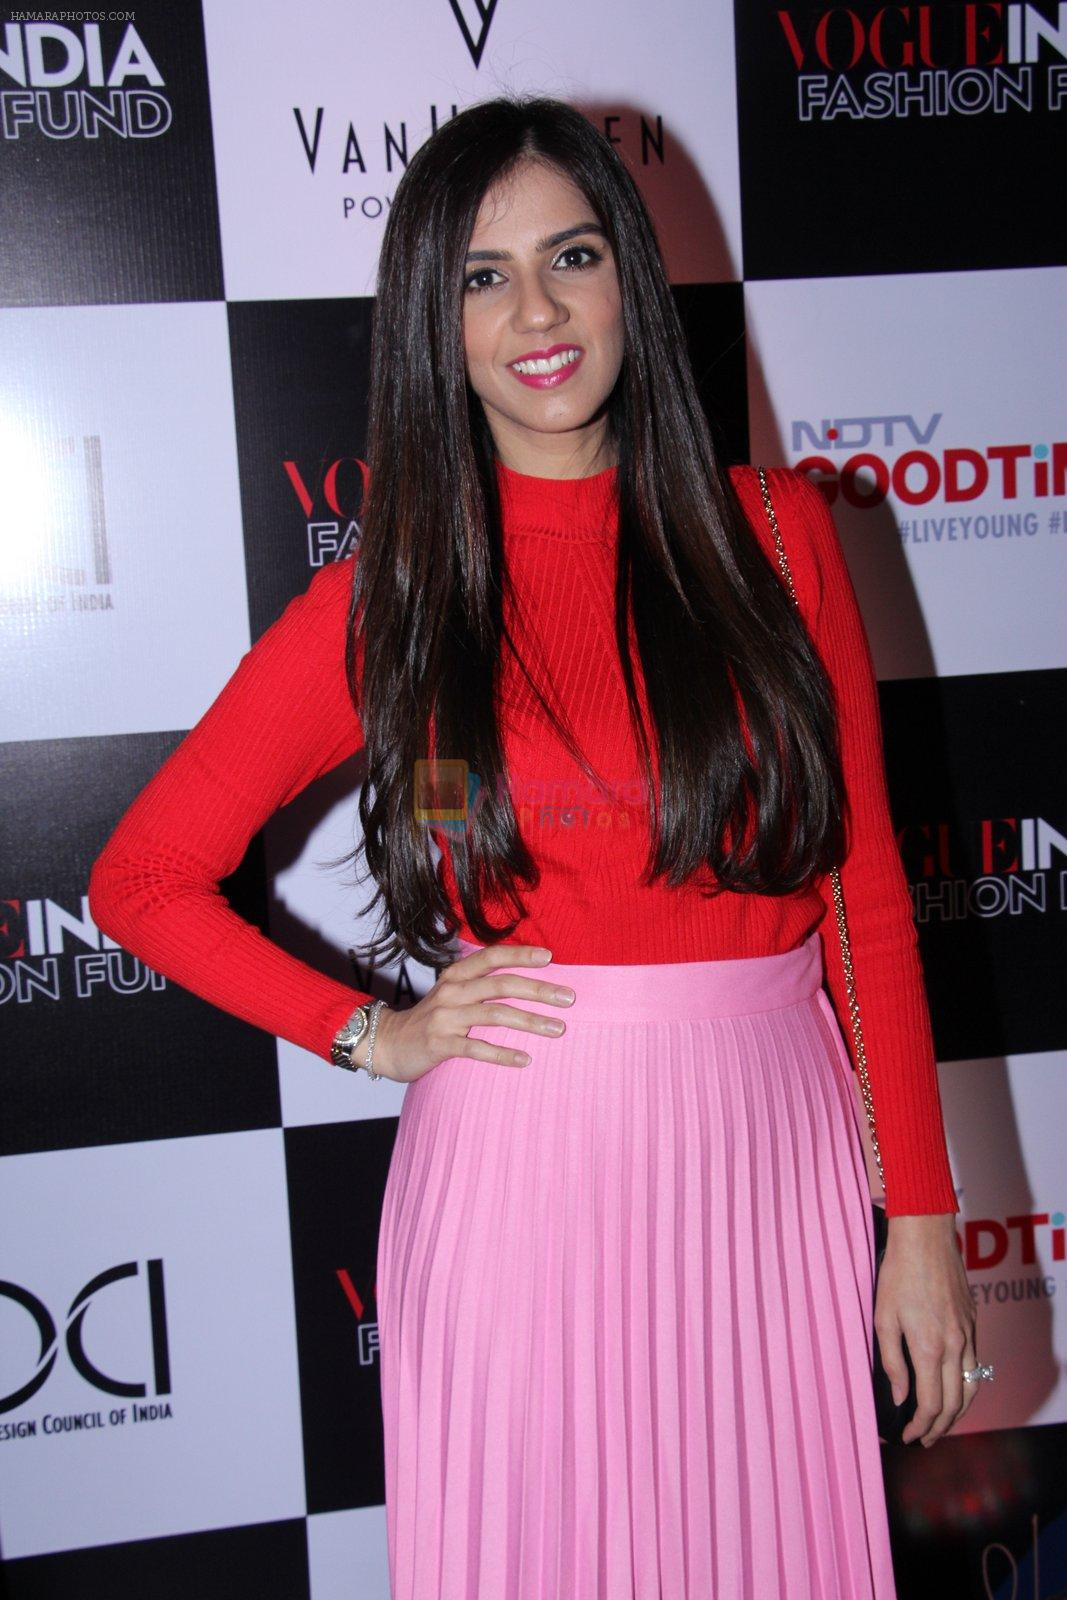 Nishka Lulla at Vogue India Fashion Fund Event on 29th Nov 2016